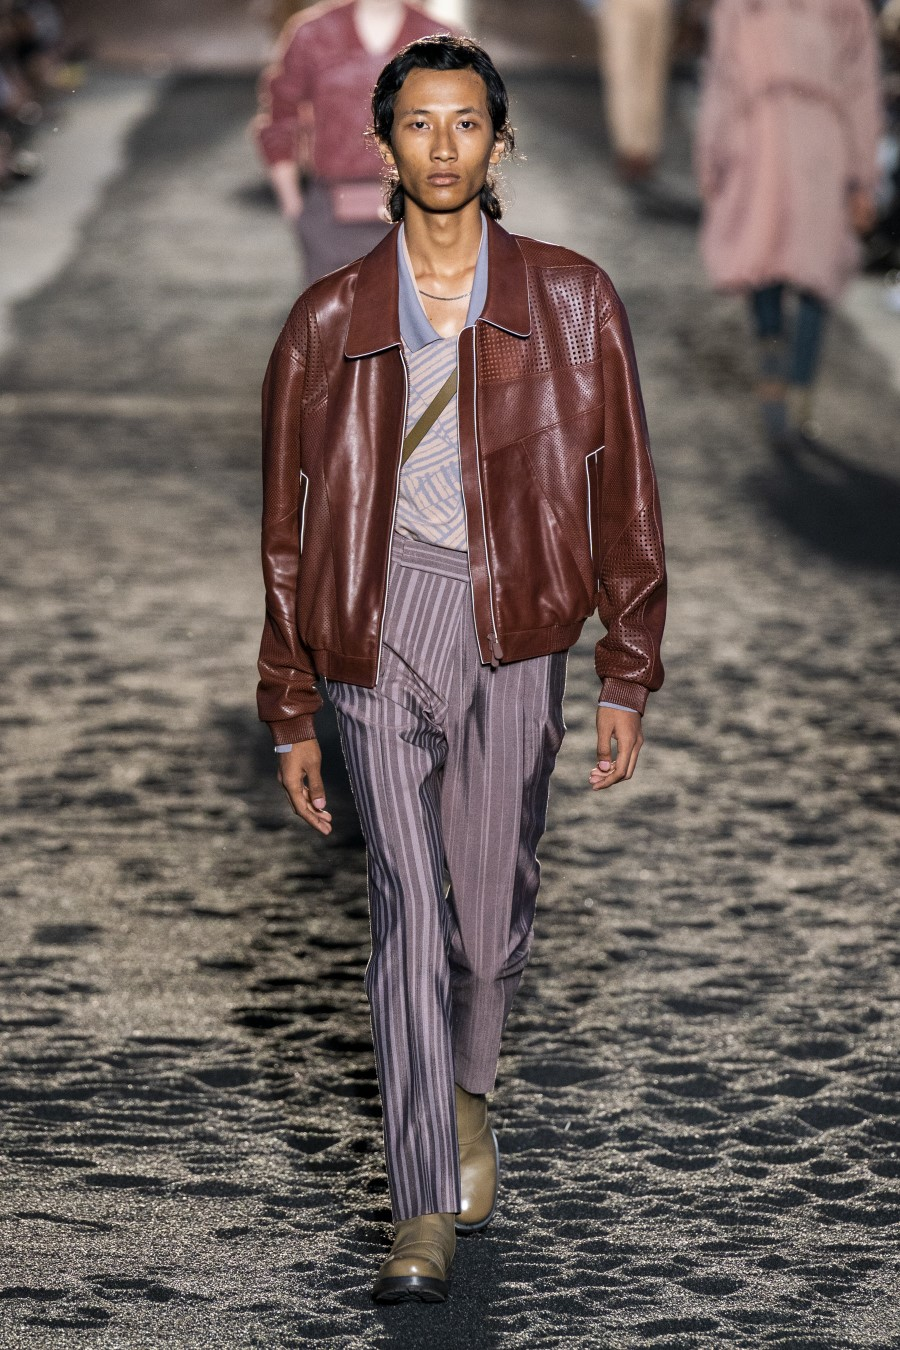 Ermenegildo Zegna - Printemps - Été 2020 - Milan Fashion Week